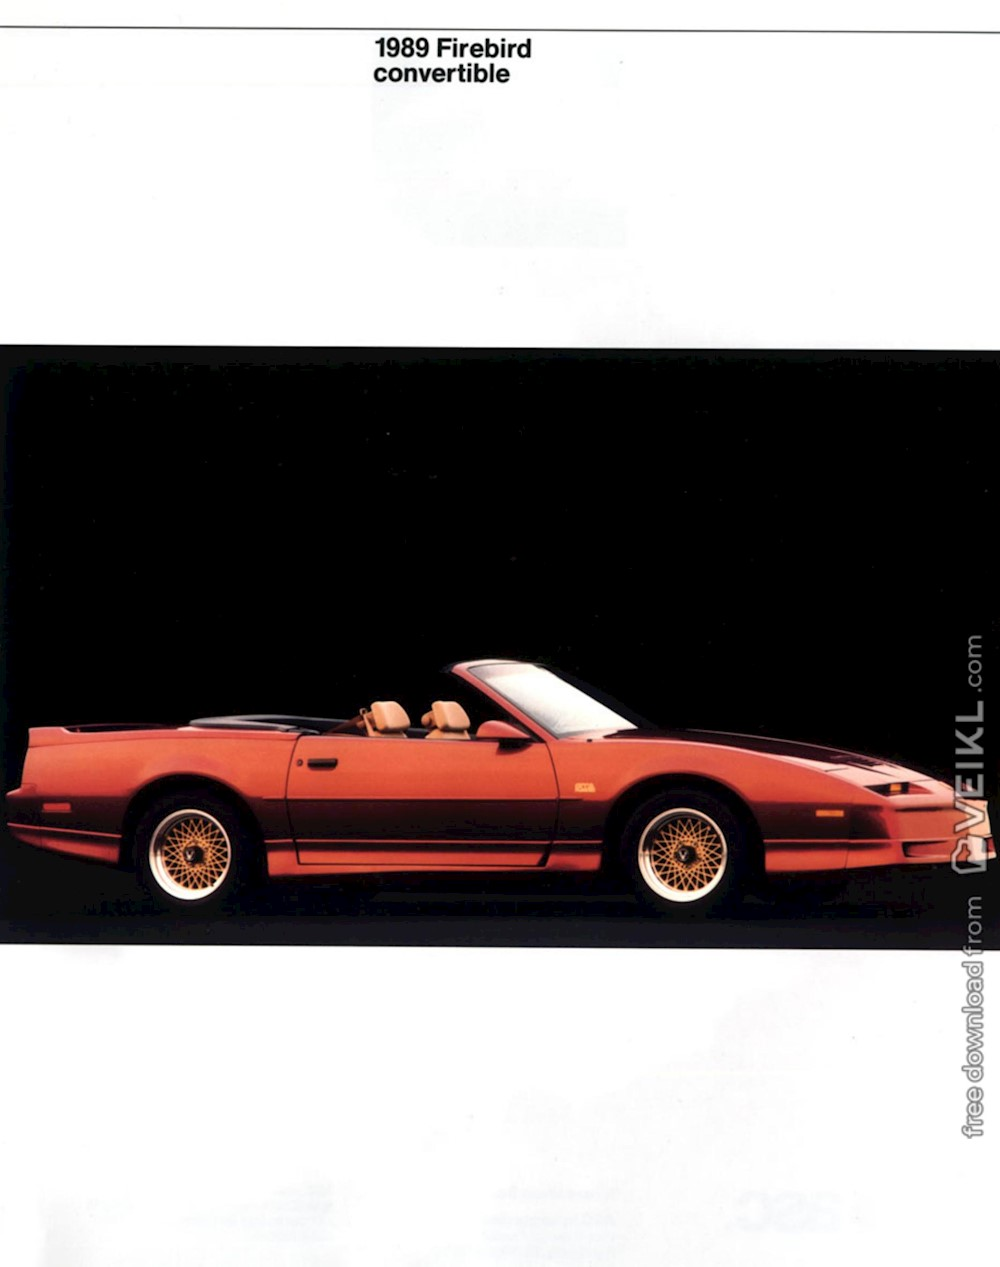 Pontiac Firebird Covertible by ASC Brochure 1989 EN